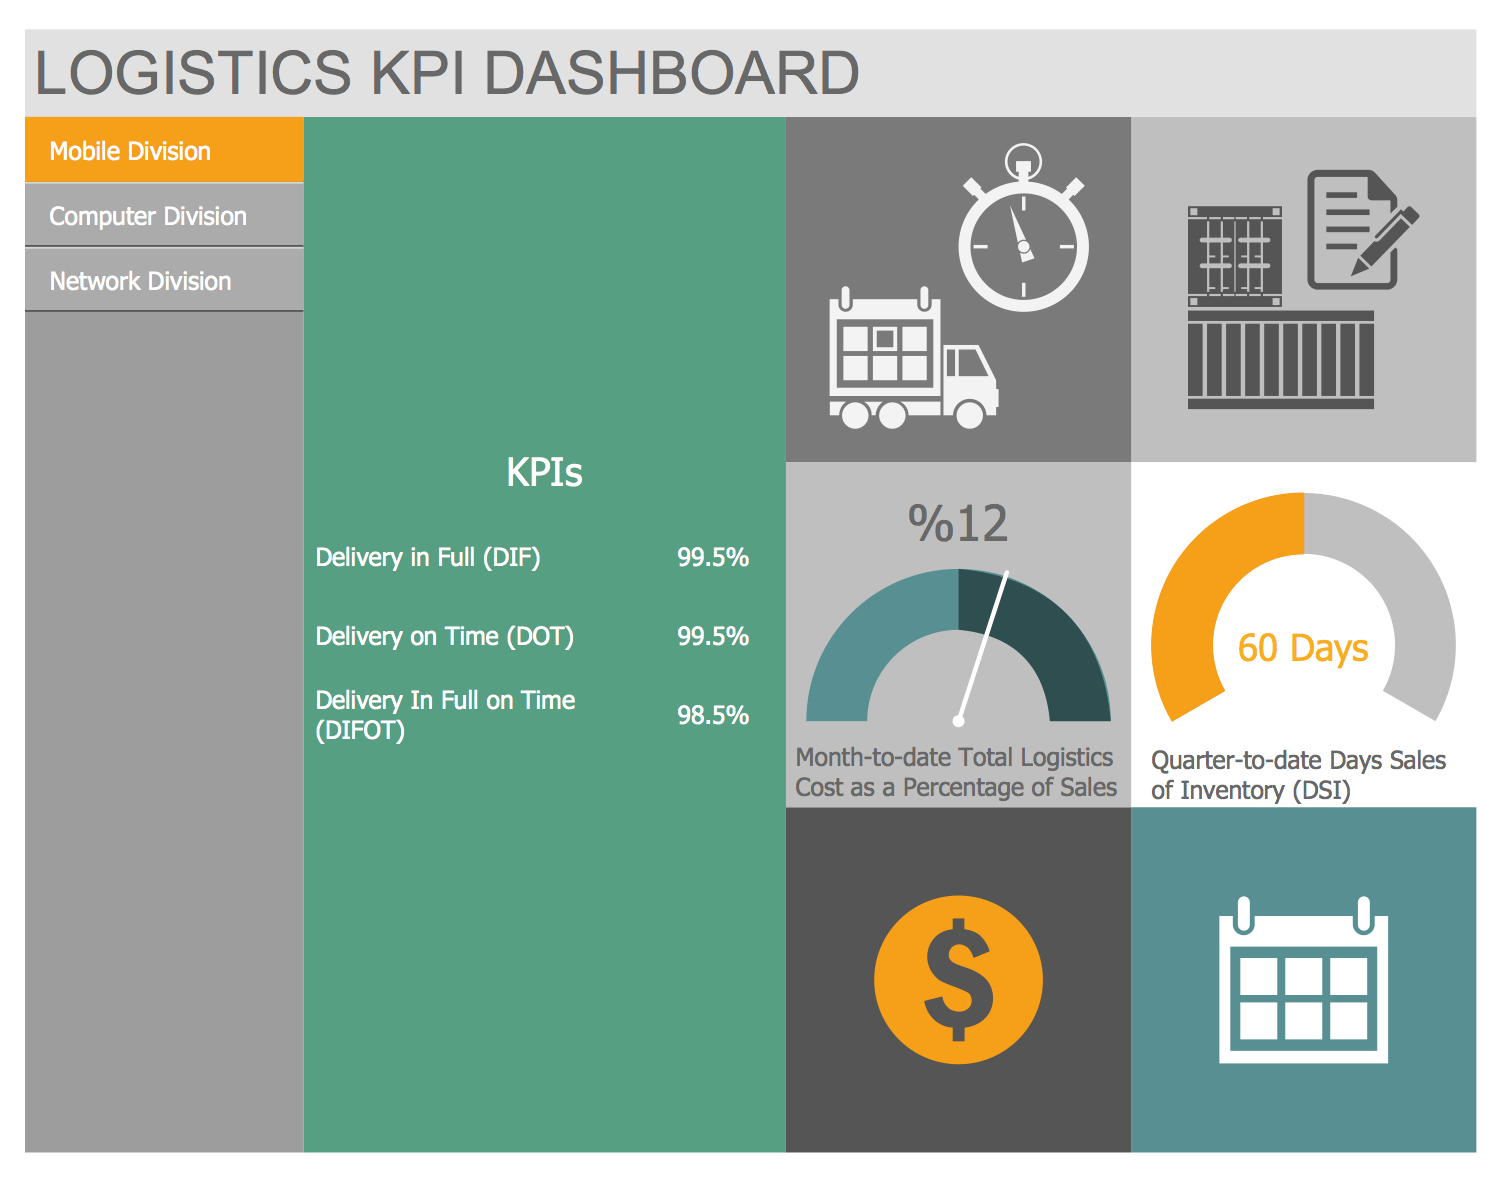 Logistic Dashboard Solution Example Logistics Kpi Dashboard This Sample Demonstrates The Three Page Logistics Kpi Dashboard Dashboard Design Logistic Map